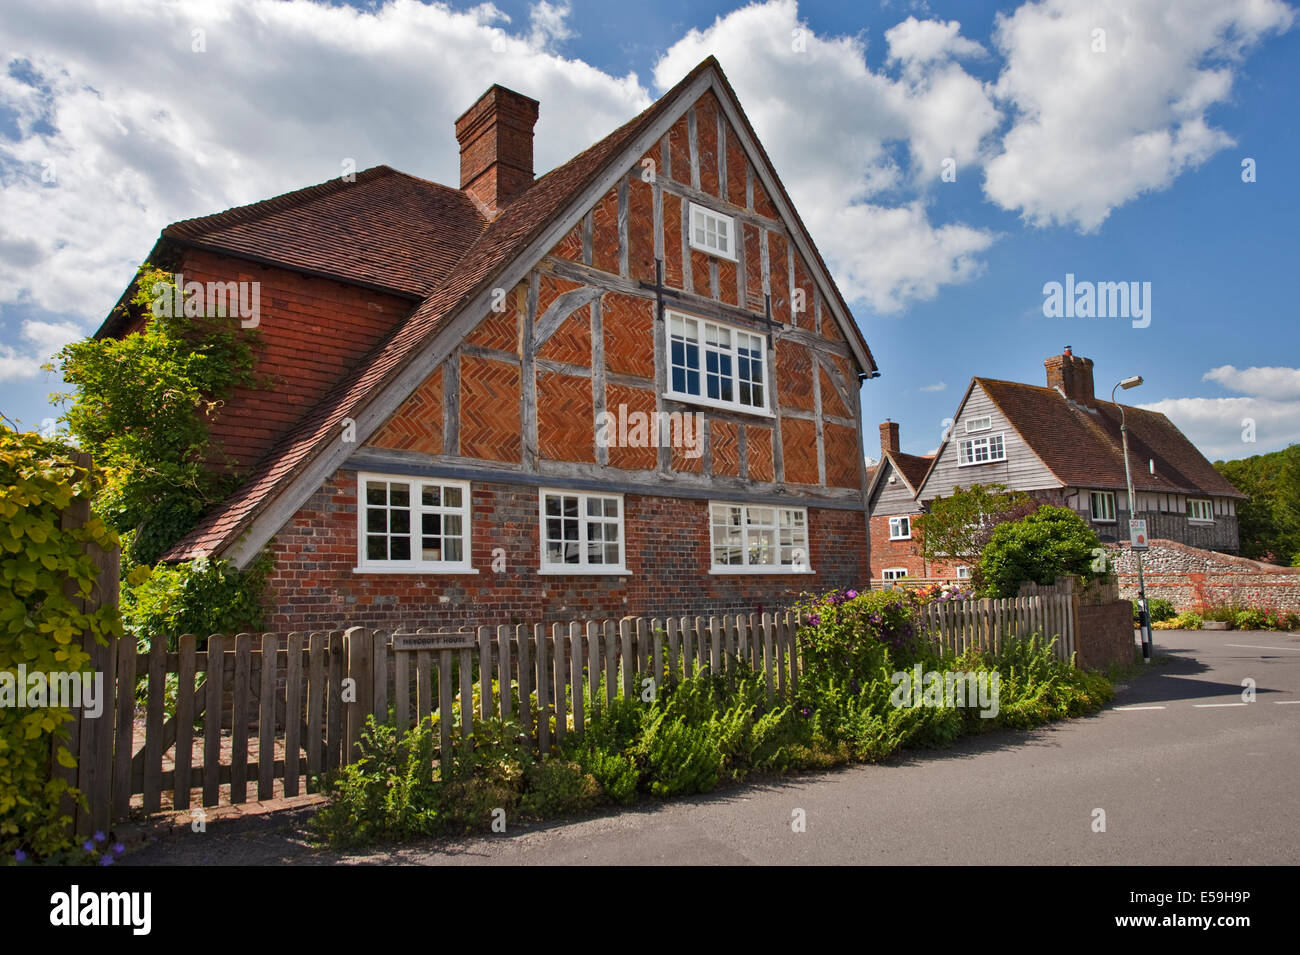 Cottages, East Meon, Hampshire, England - Stock Image